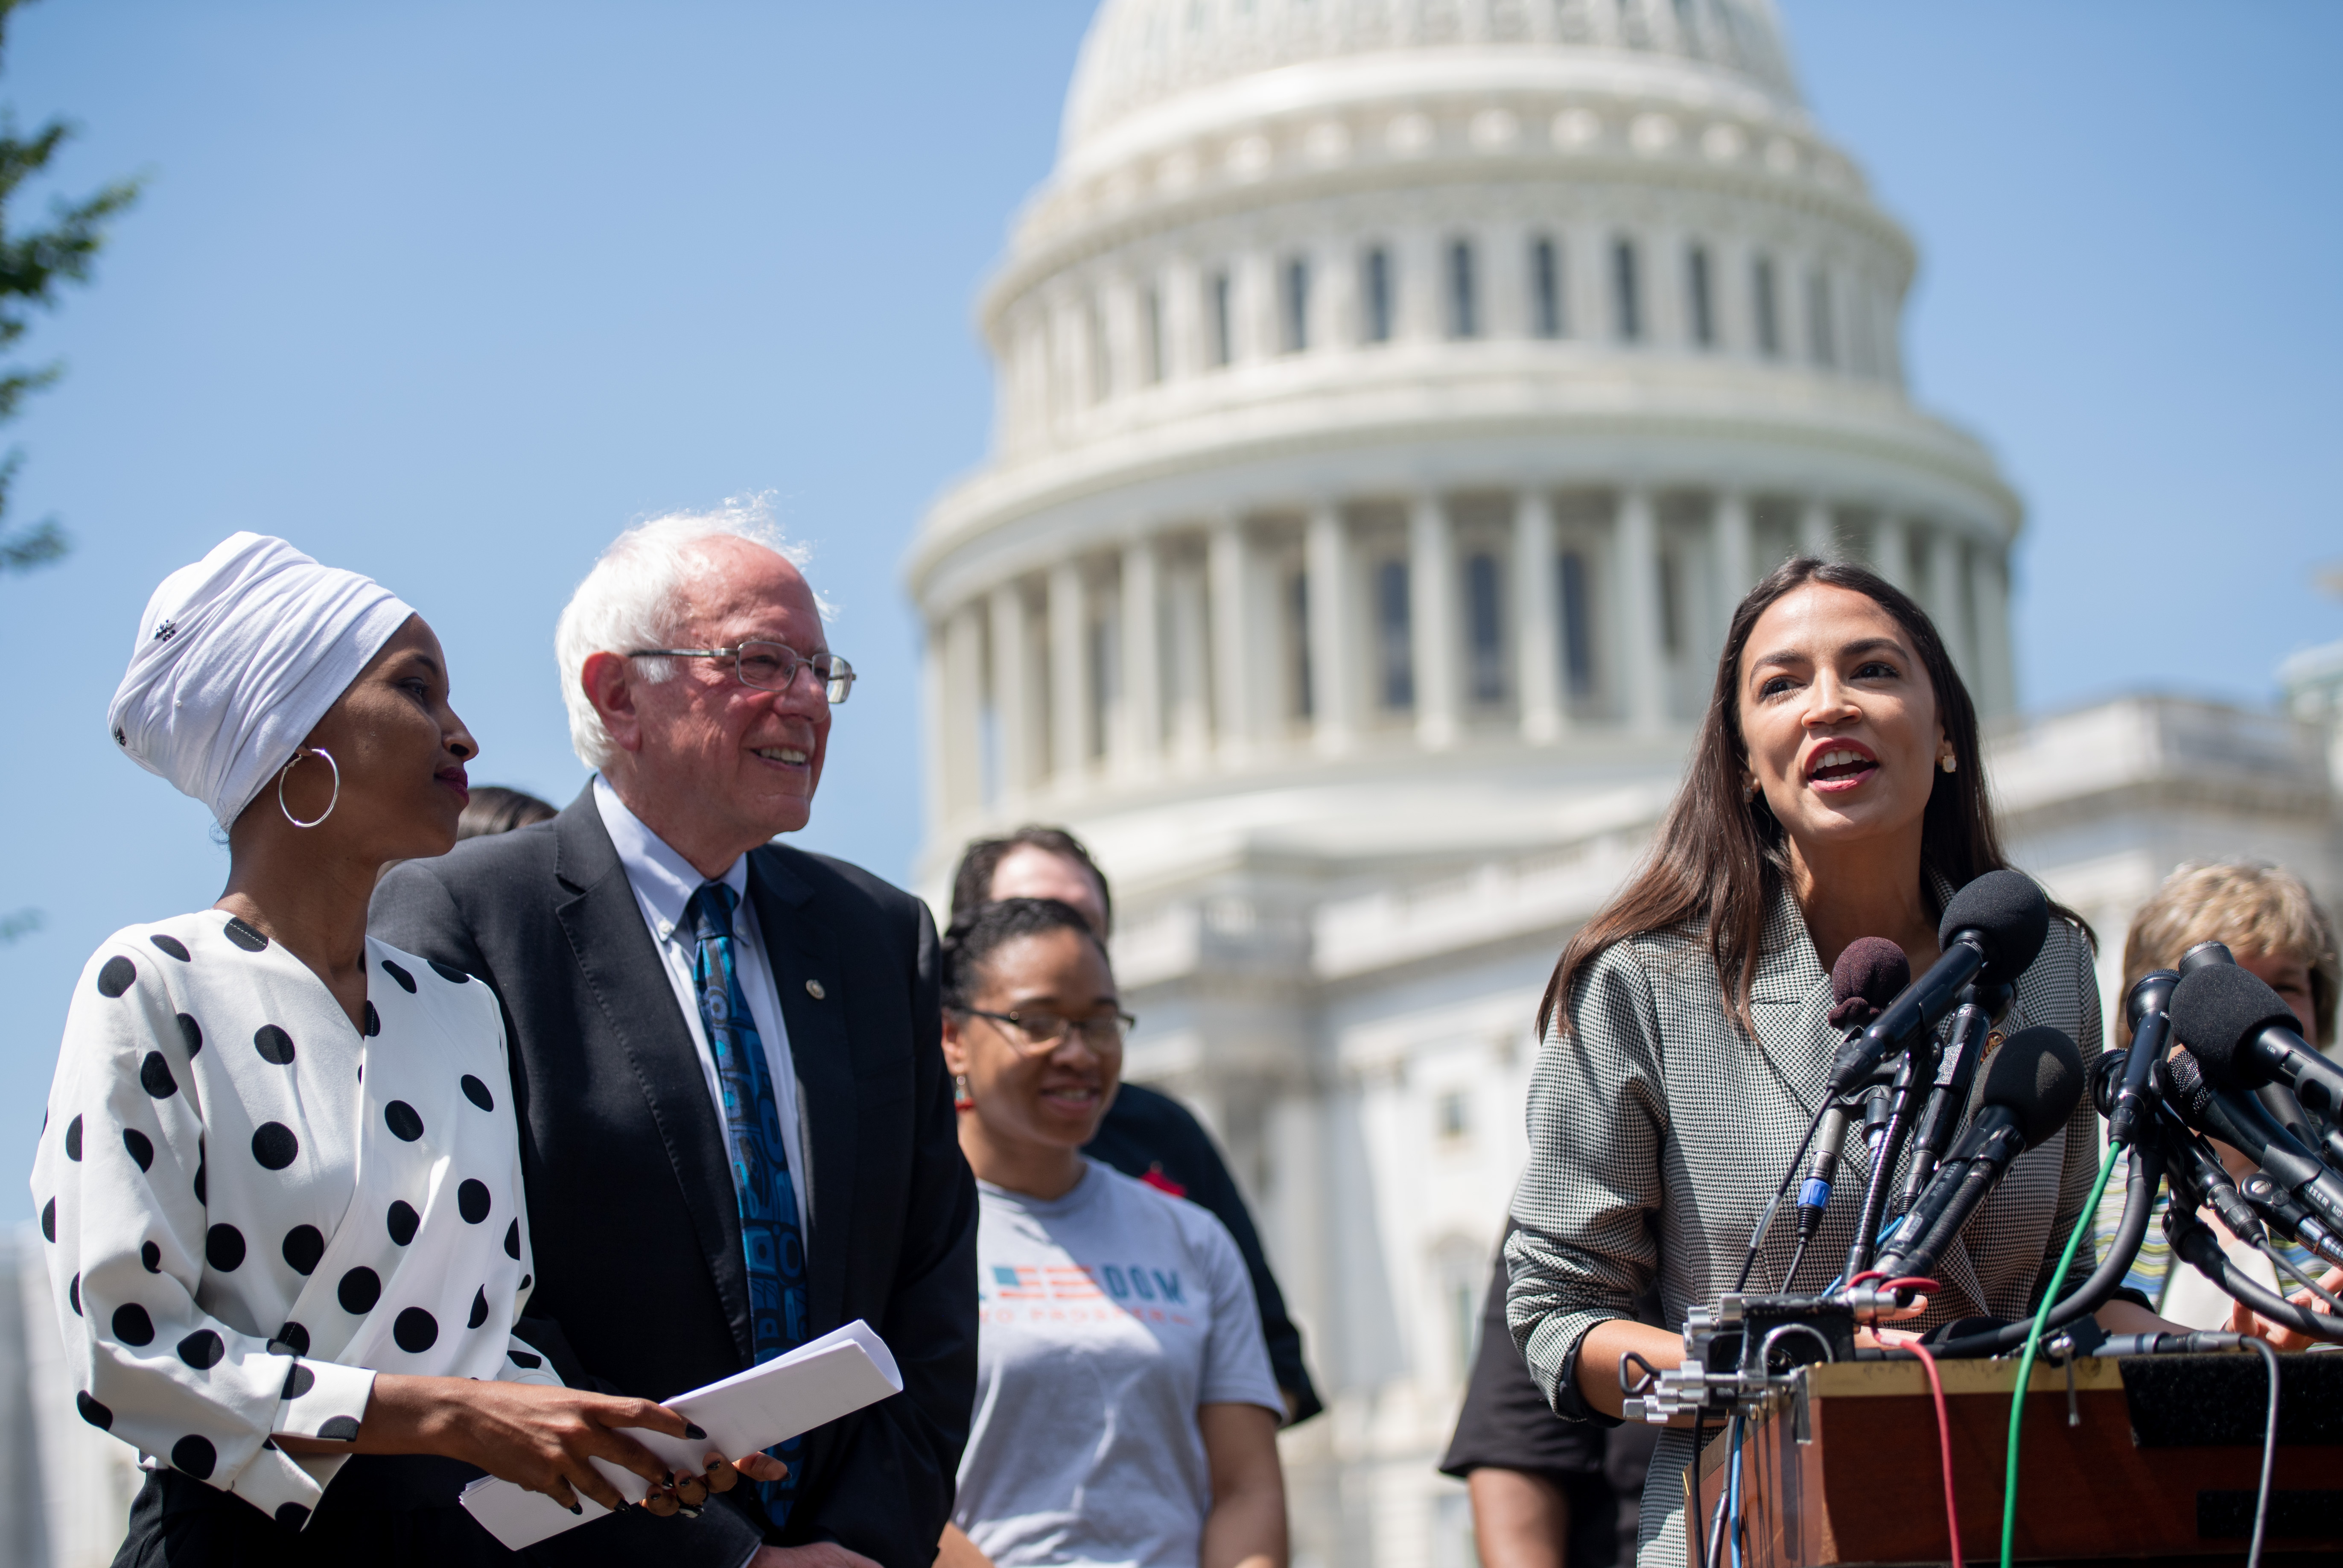 Bernie Sanders and Ilhan Omar Want to Make School Lunch Free for All Students